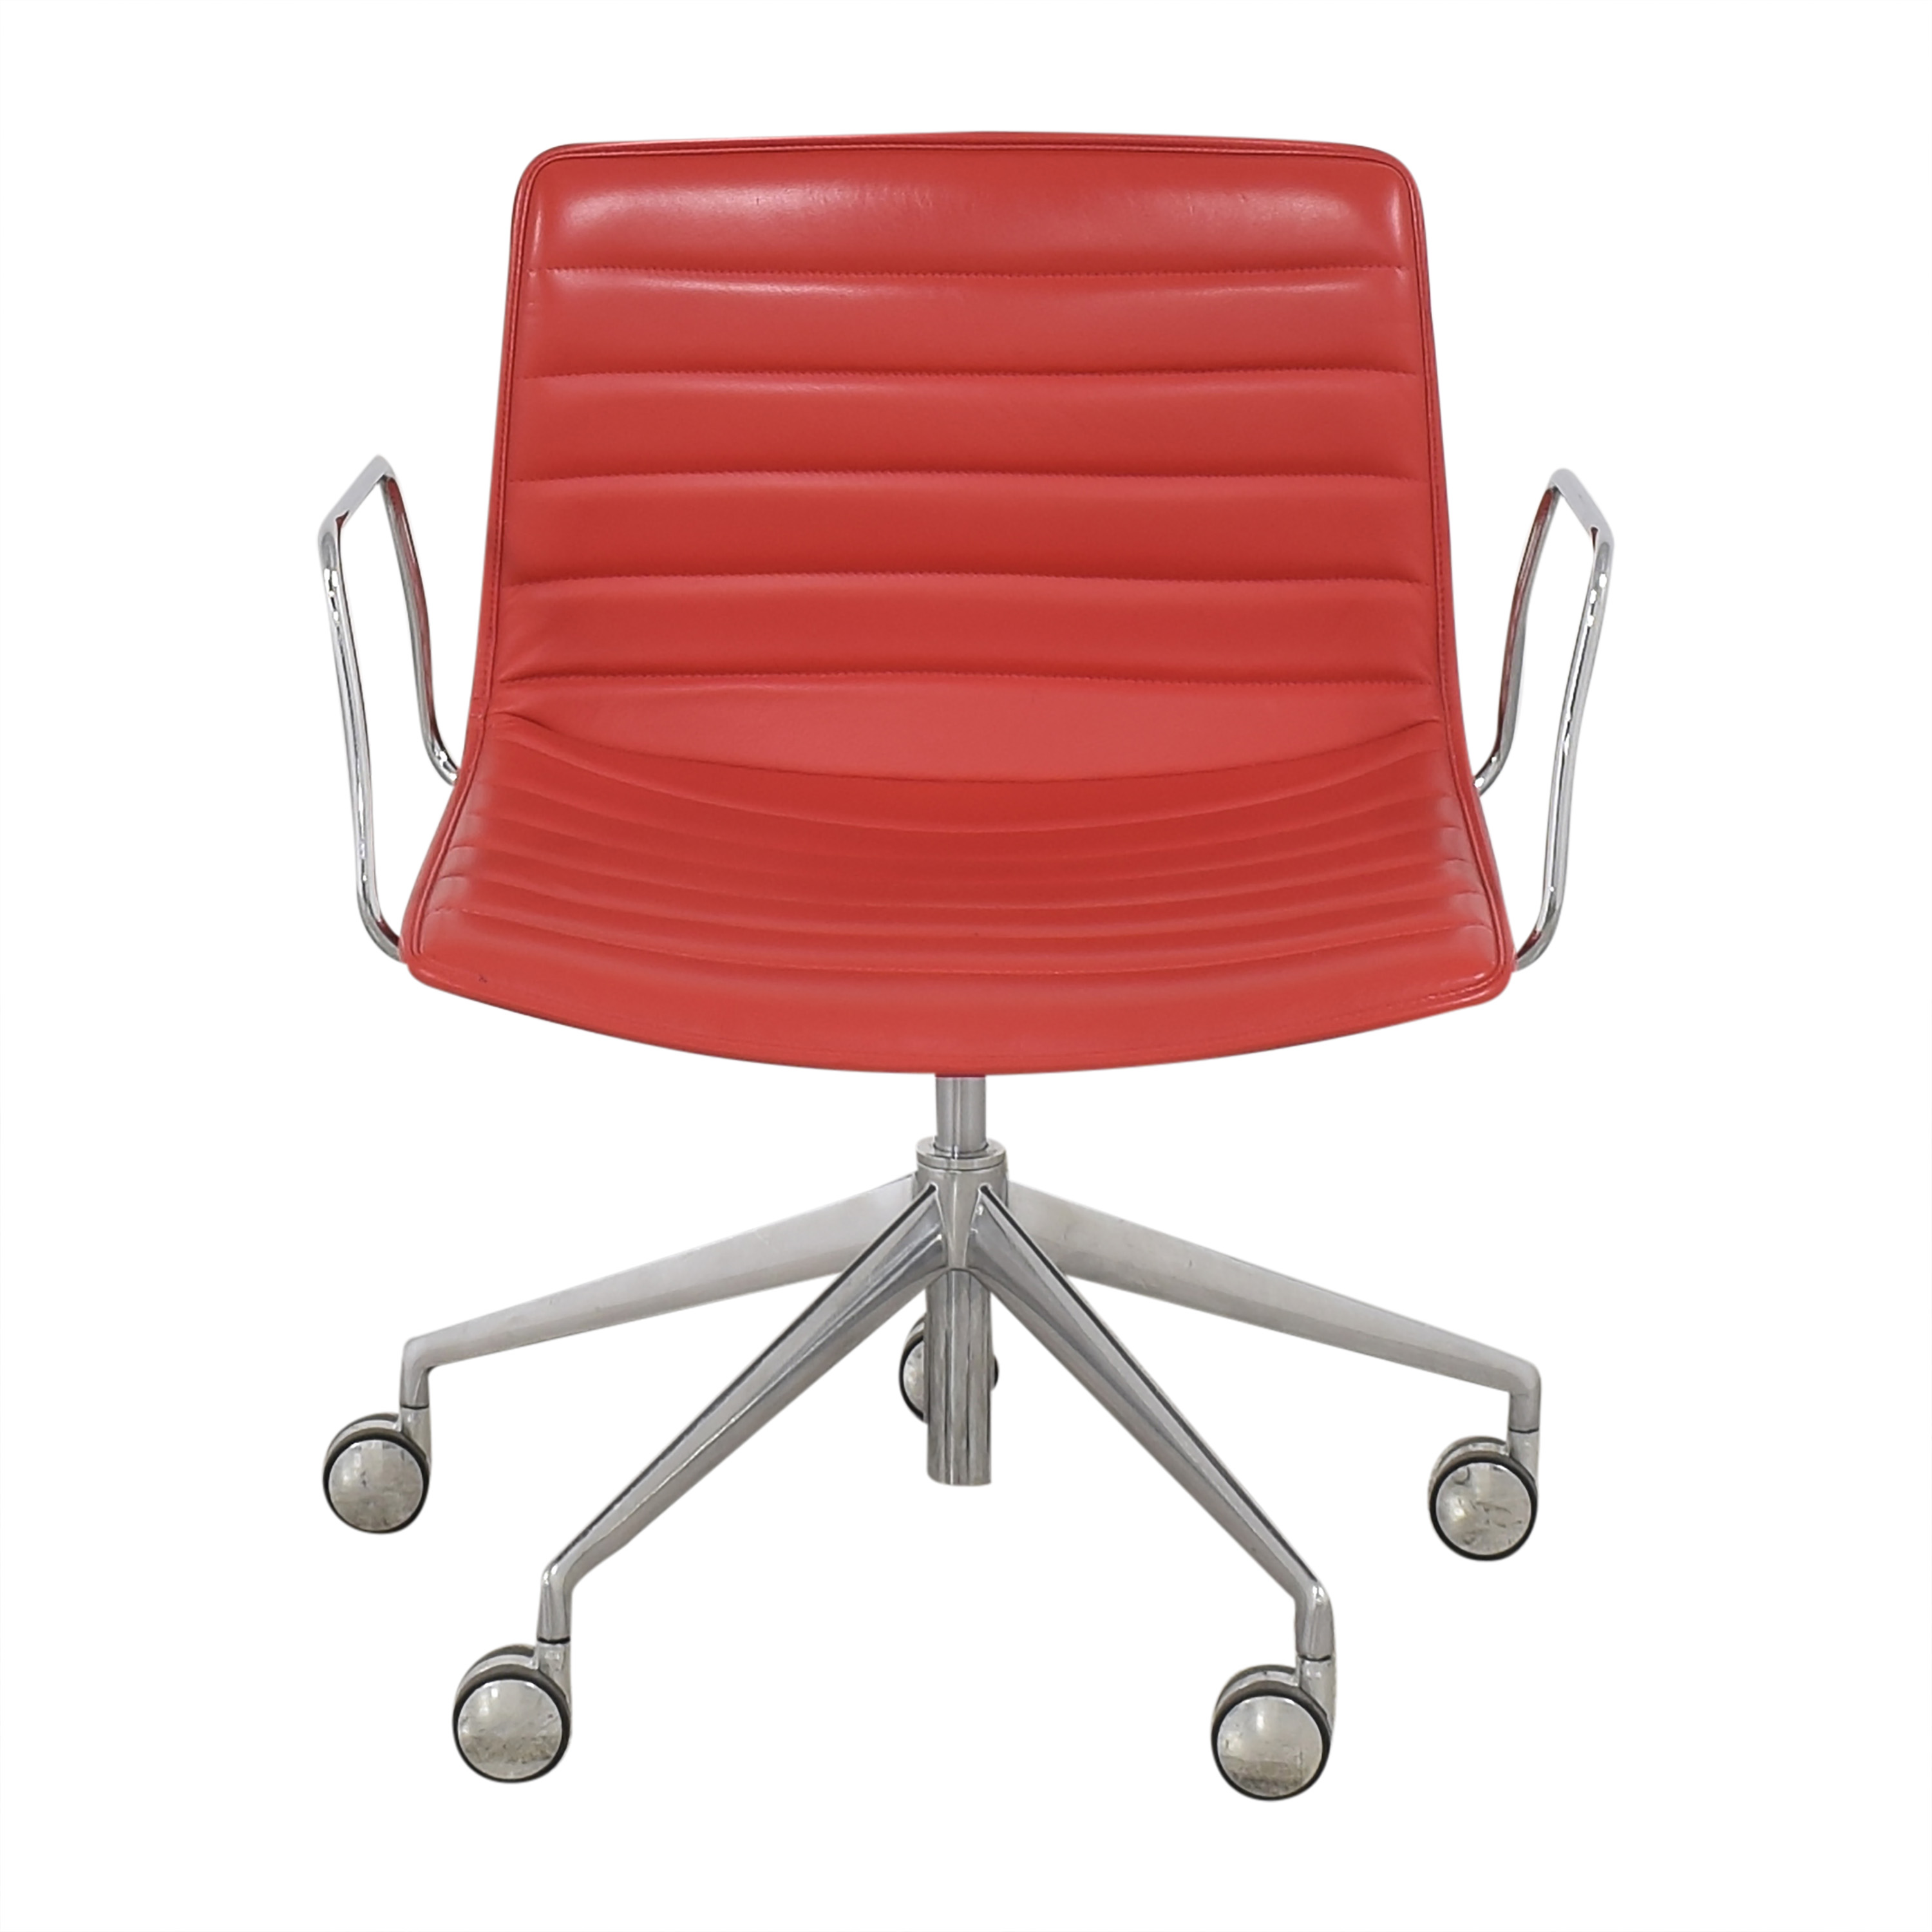 Gordon International Gordon International Catifa Arm Chair second hand